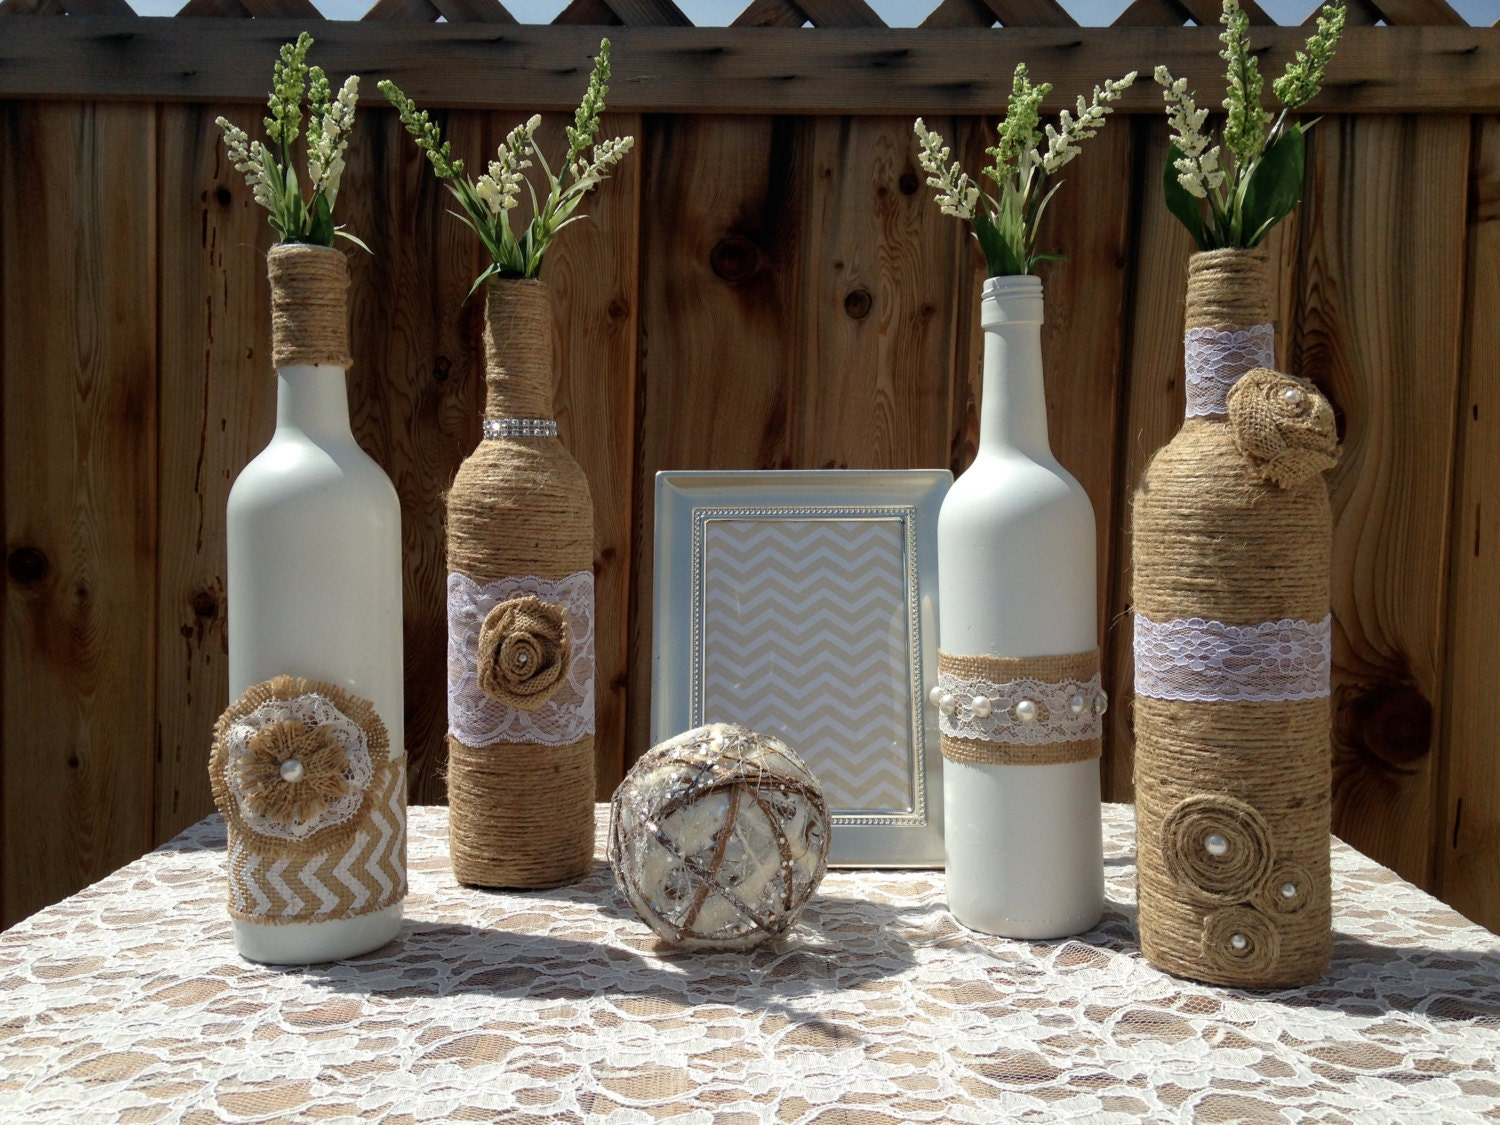 Wedding Table Wine Bottle Wedding Table Decorations wedding centerpieces vases shabby chic rustic